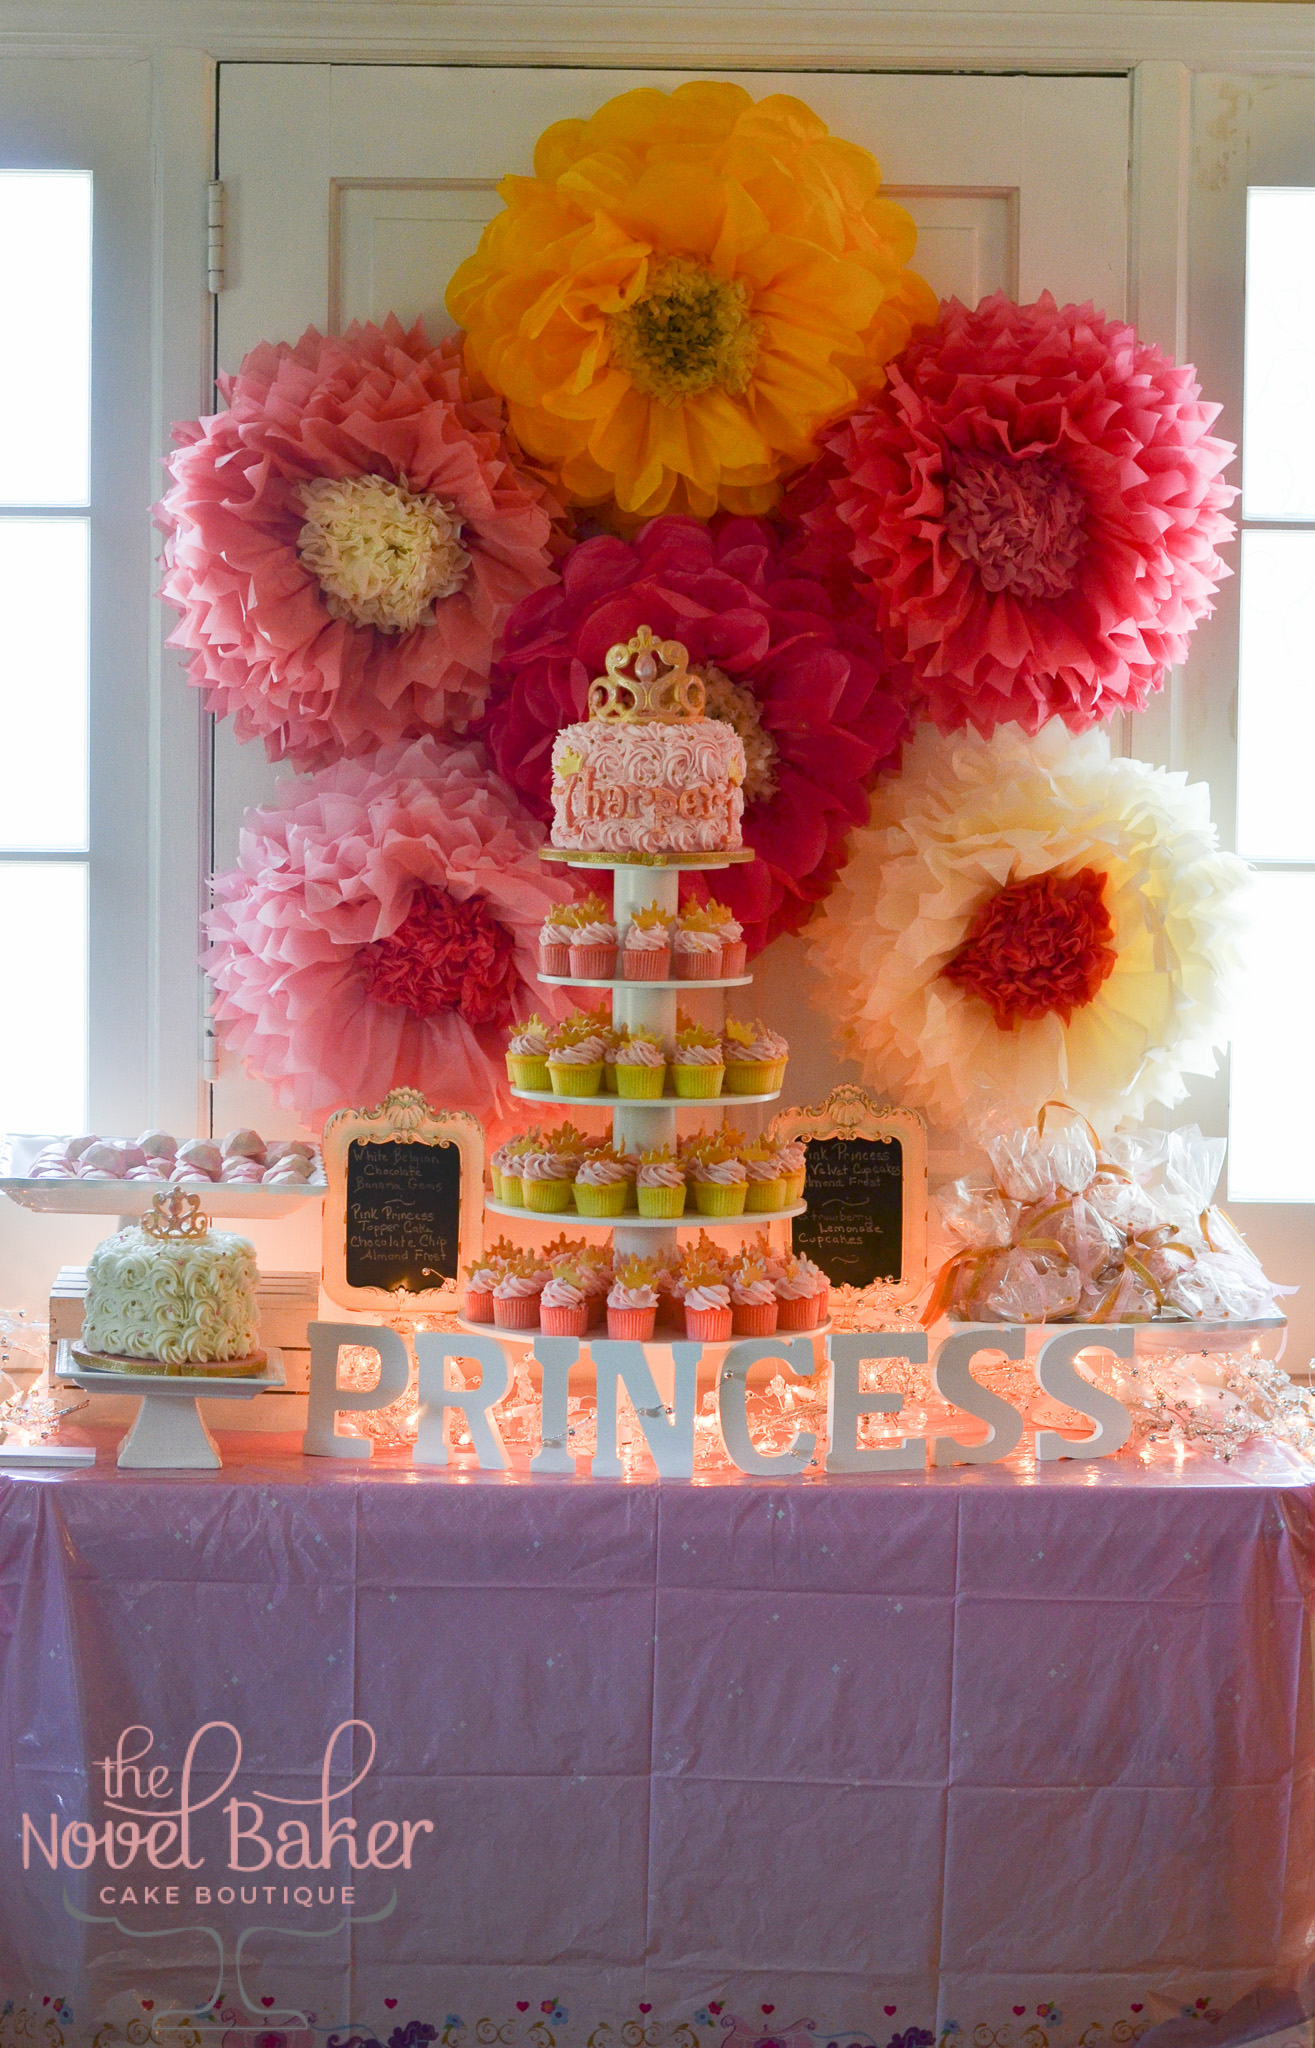 Party table with pink gems, crown favor cookies and smash cake along side a 5 Tier Cupcake tower filled with pink minis topped with gold crowns and a top tier Princess cake of pink rosettes, pearl centers, and a gold rubbed tiara.